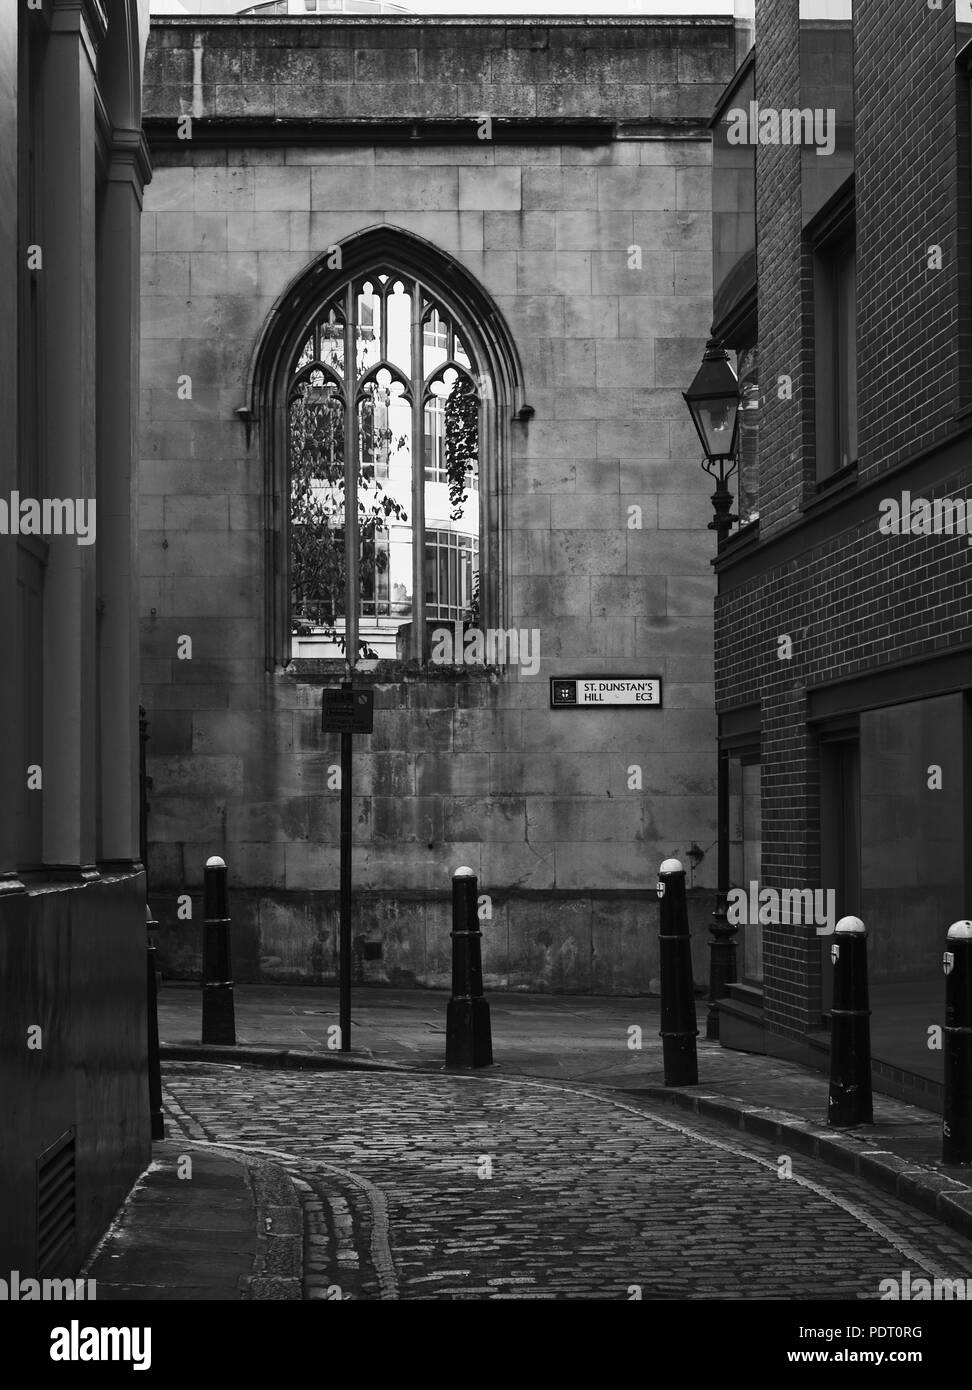 Black and white image of atmospheric street with cobblestone in London. Stone wall with gothic style window - Stock Image